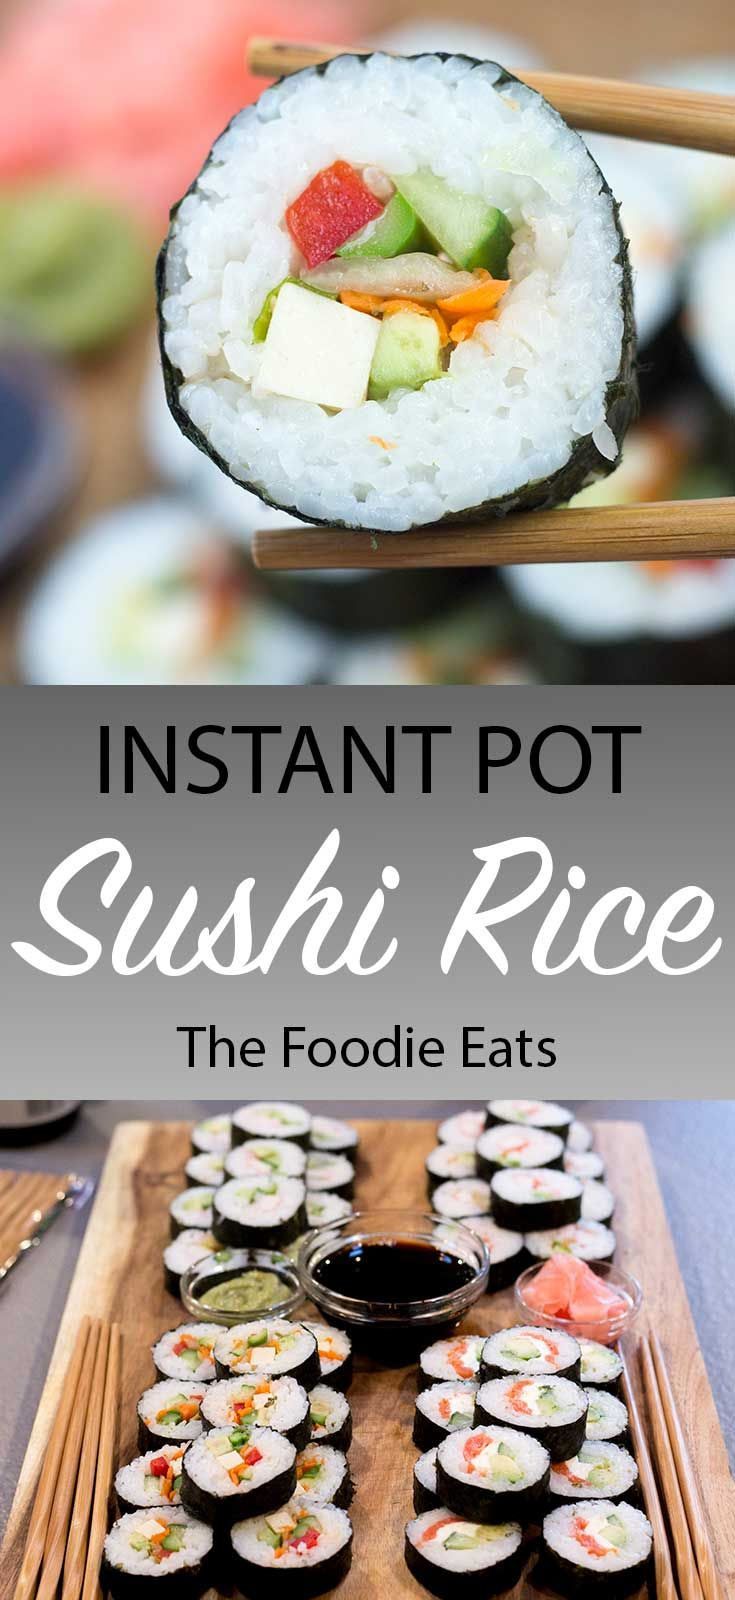 Instant Pot Sushi Rice #seasonedricerecipes